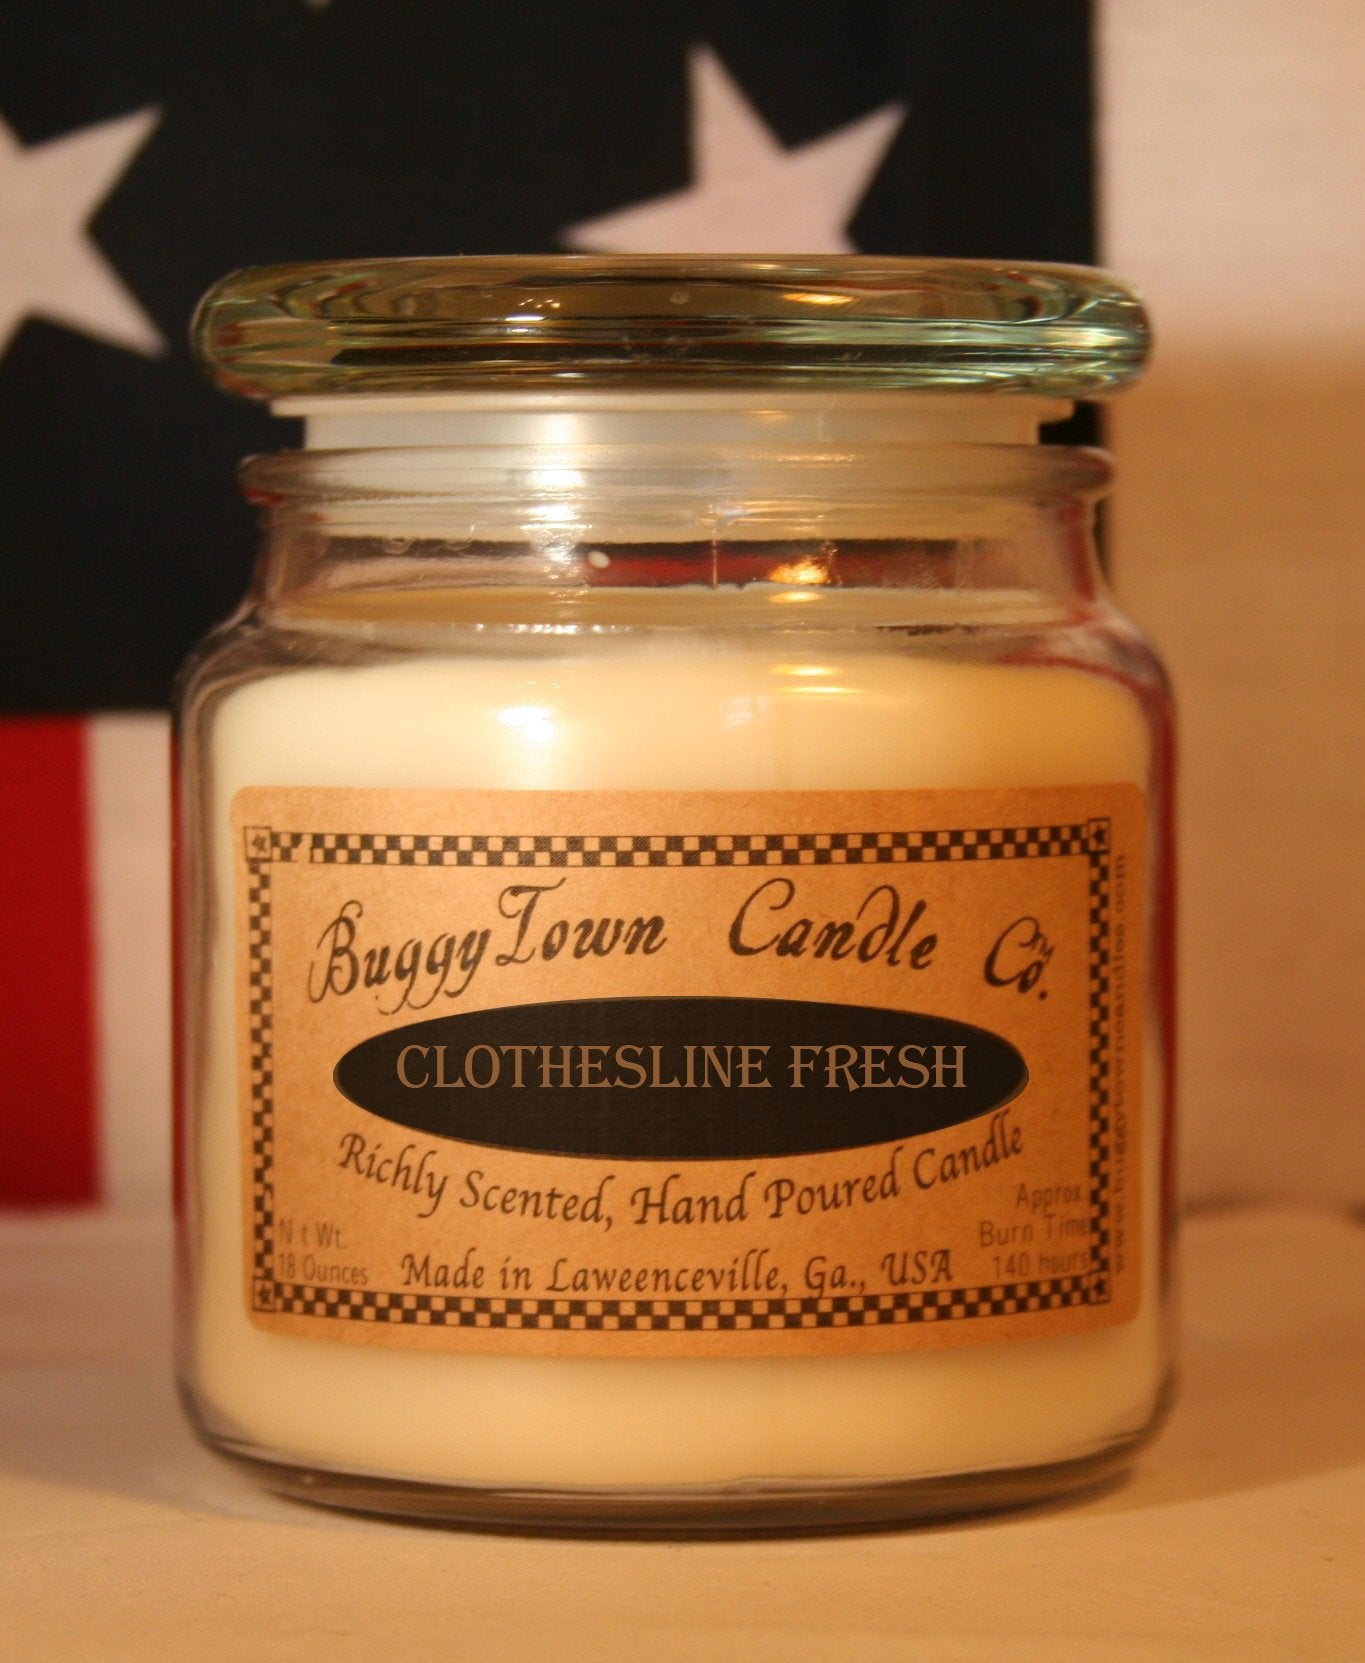 Clothesline Fresh Candles